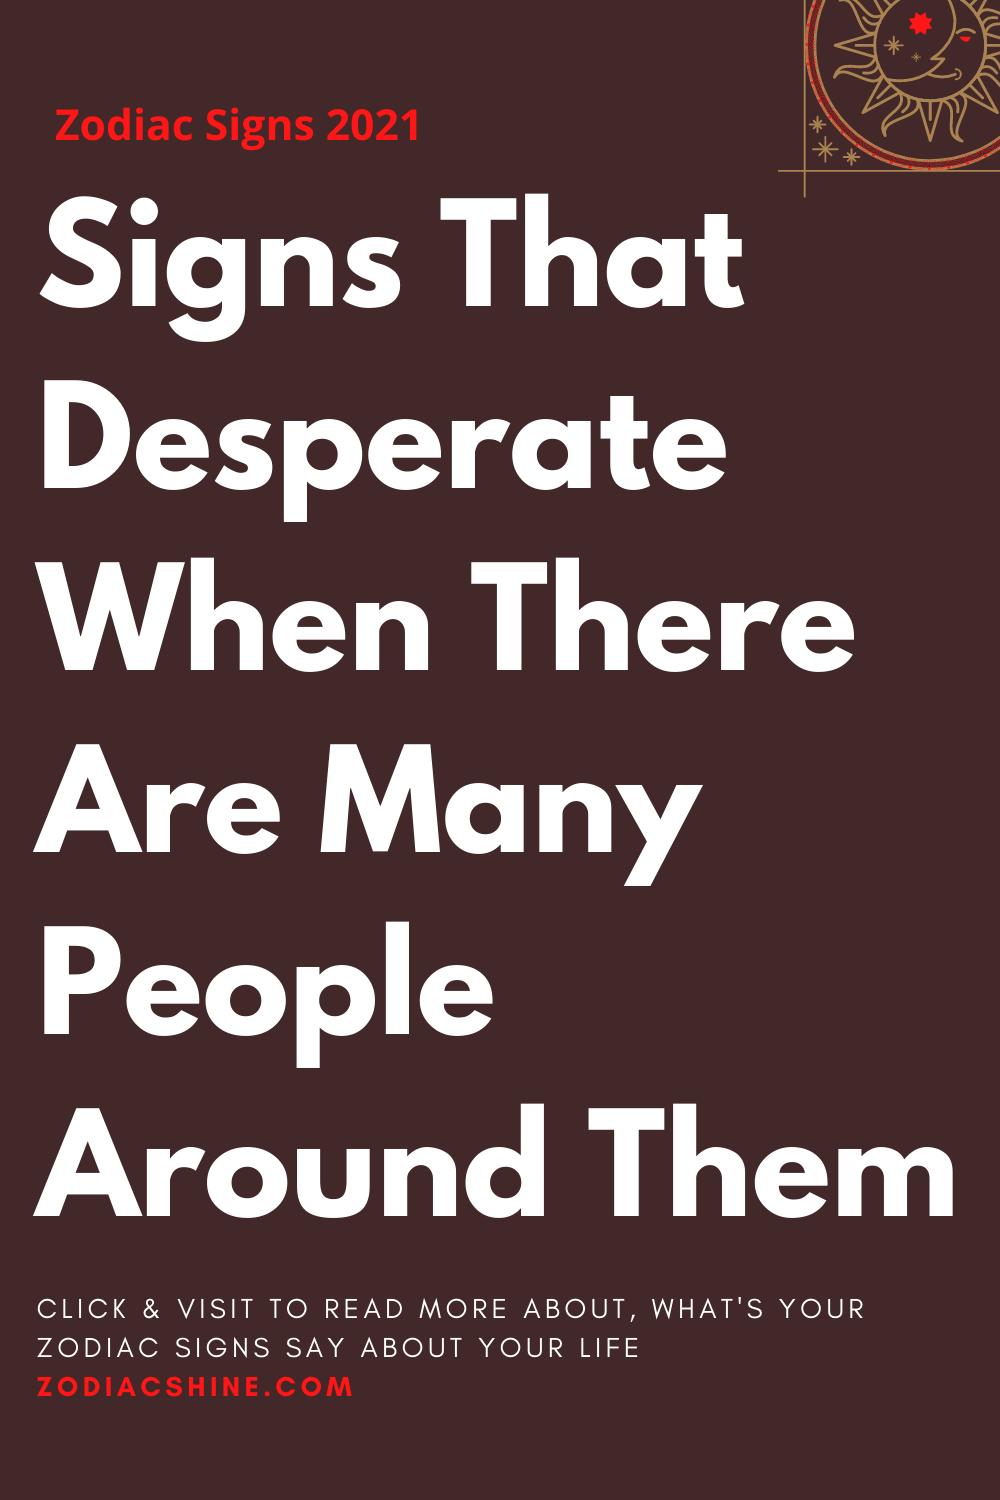 Signs That Desperate When There Are Many People Around Them